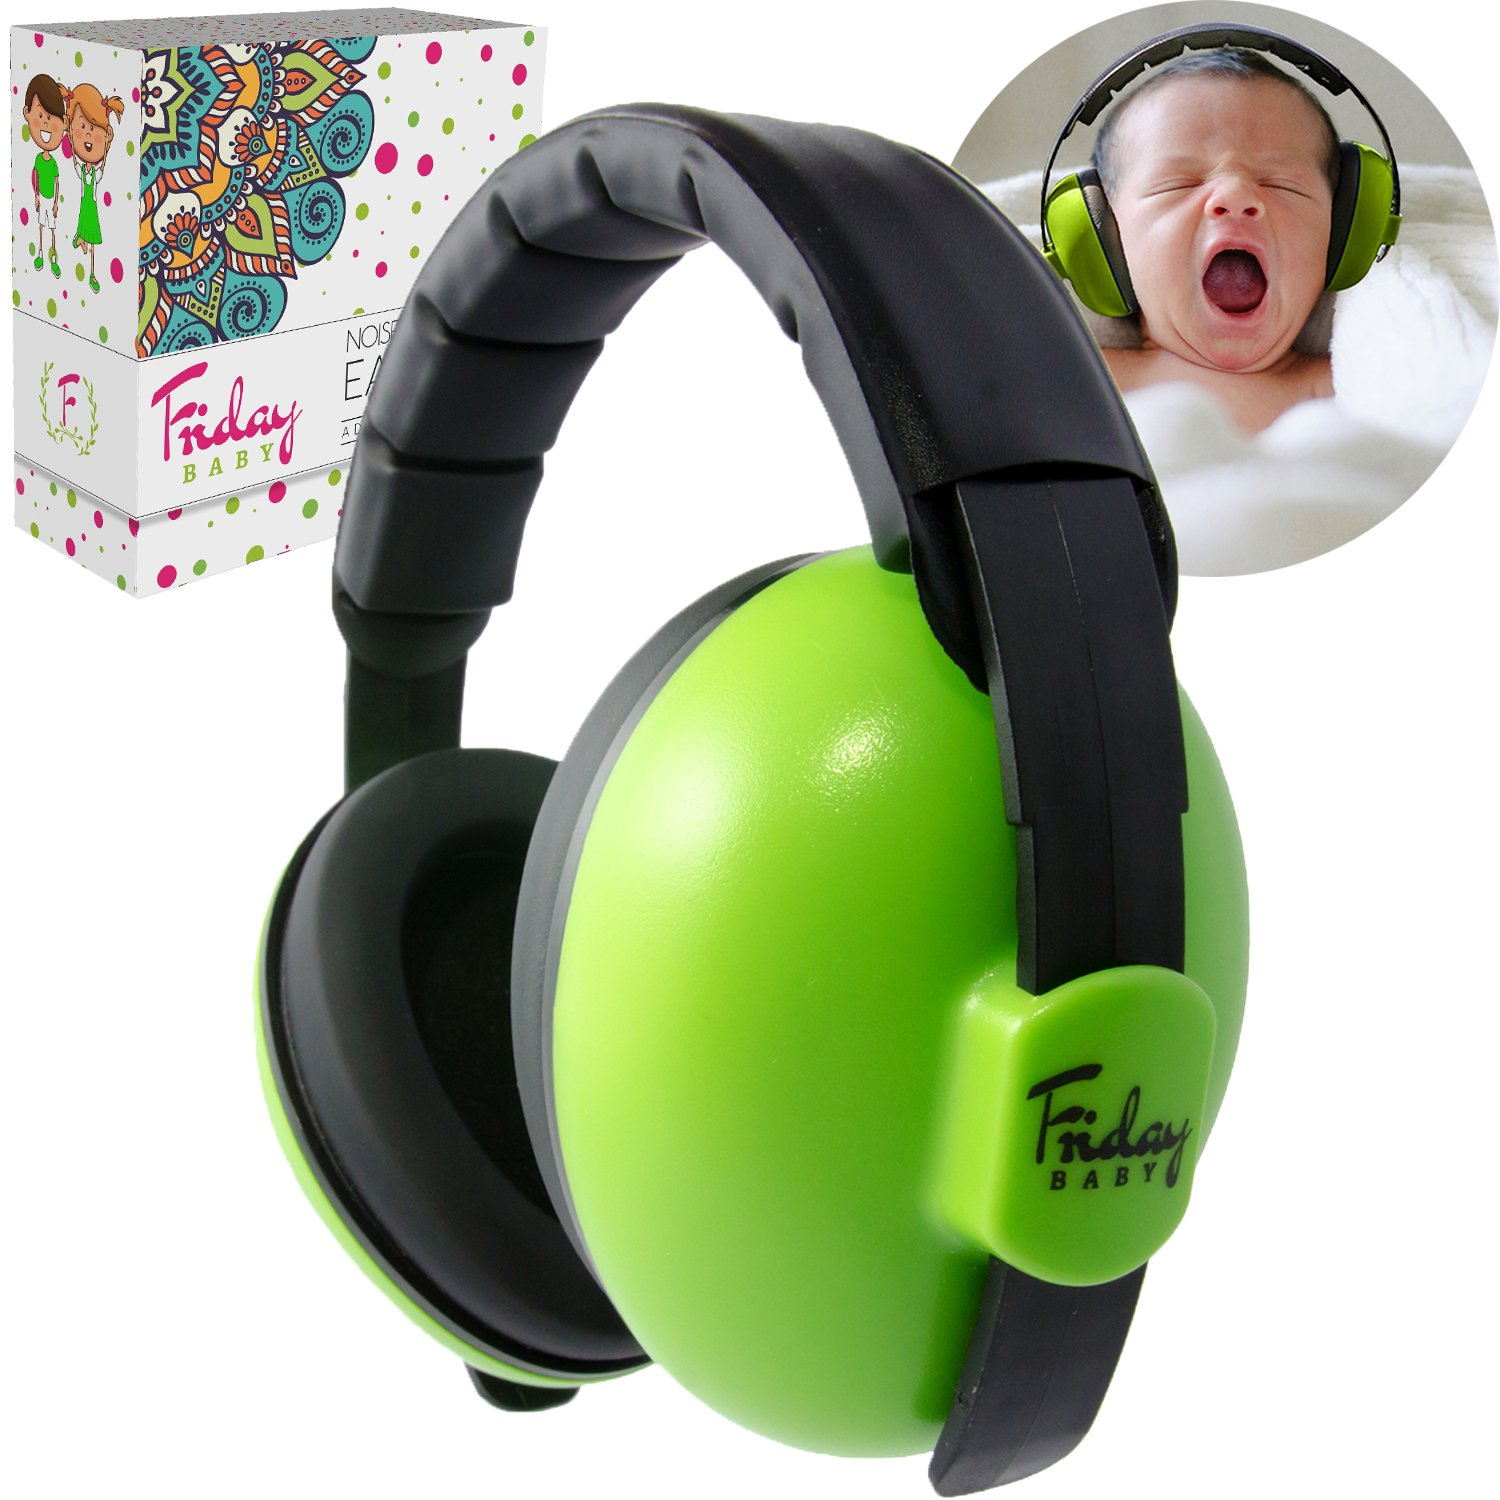 Newborn Baby Ear Protection by FridayBaby - Comfortable and Adjustable Noise Cancelling Headphones for Babies, Toddlers & Infants | Baby Headphones Noise Reduction for Concerts Fireworks (0-2+ Years)